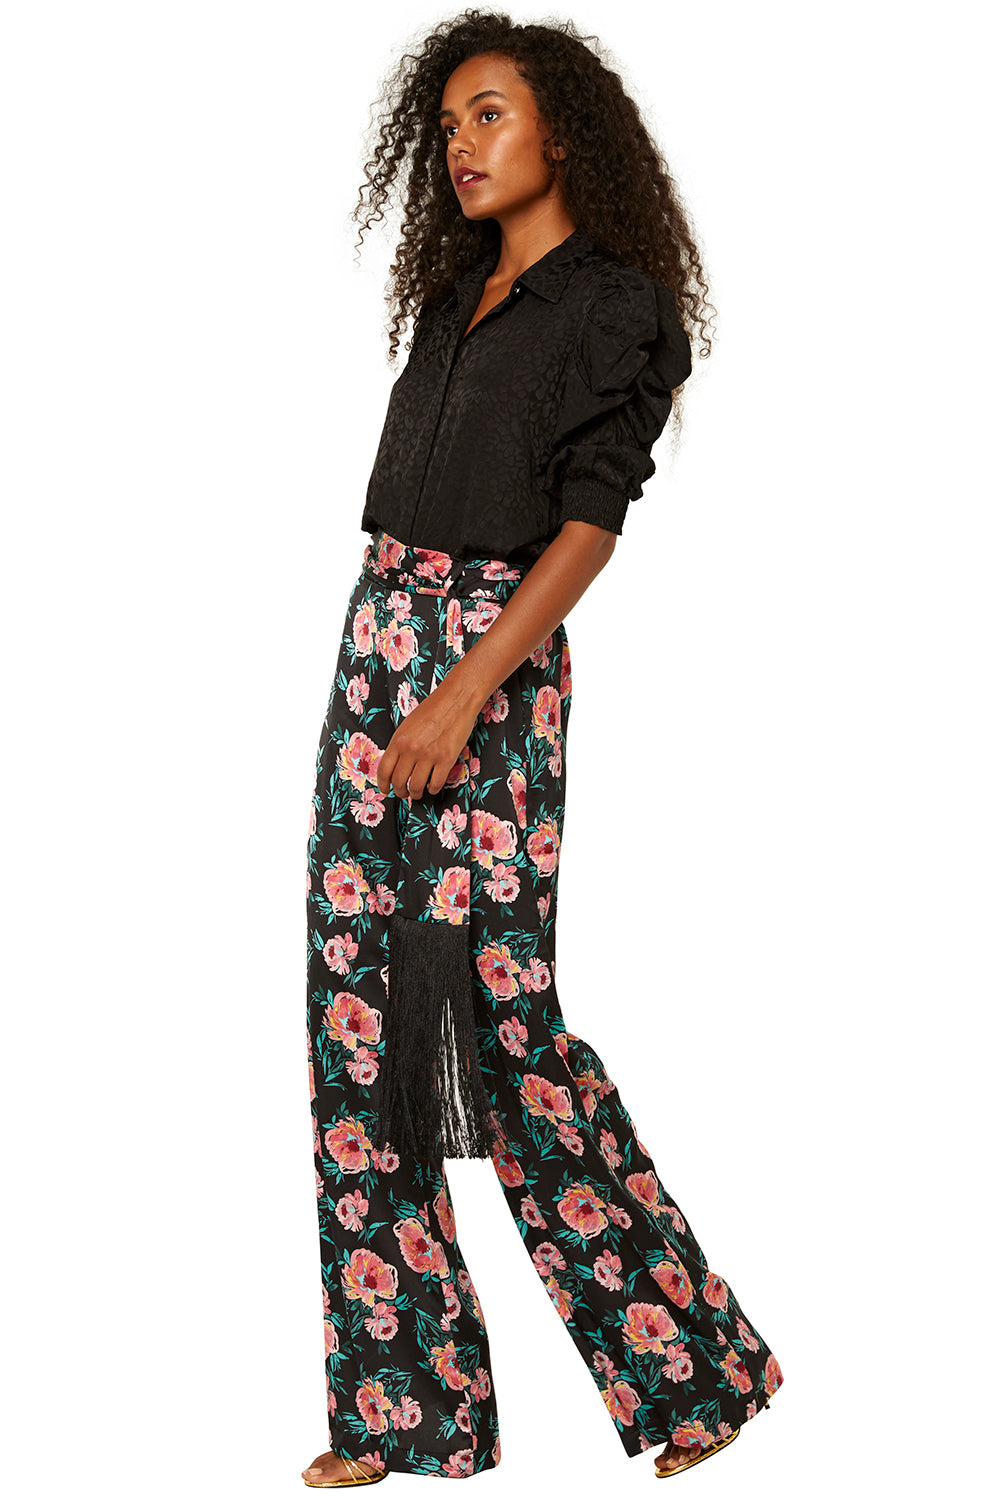 DAMALI PANTS - ONLINE EXCLUSIVE